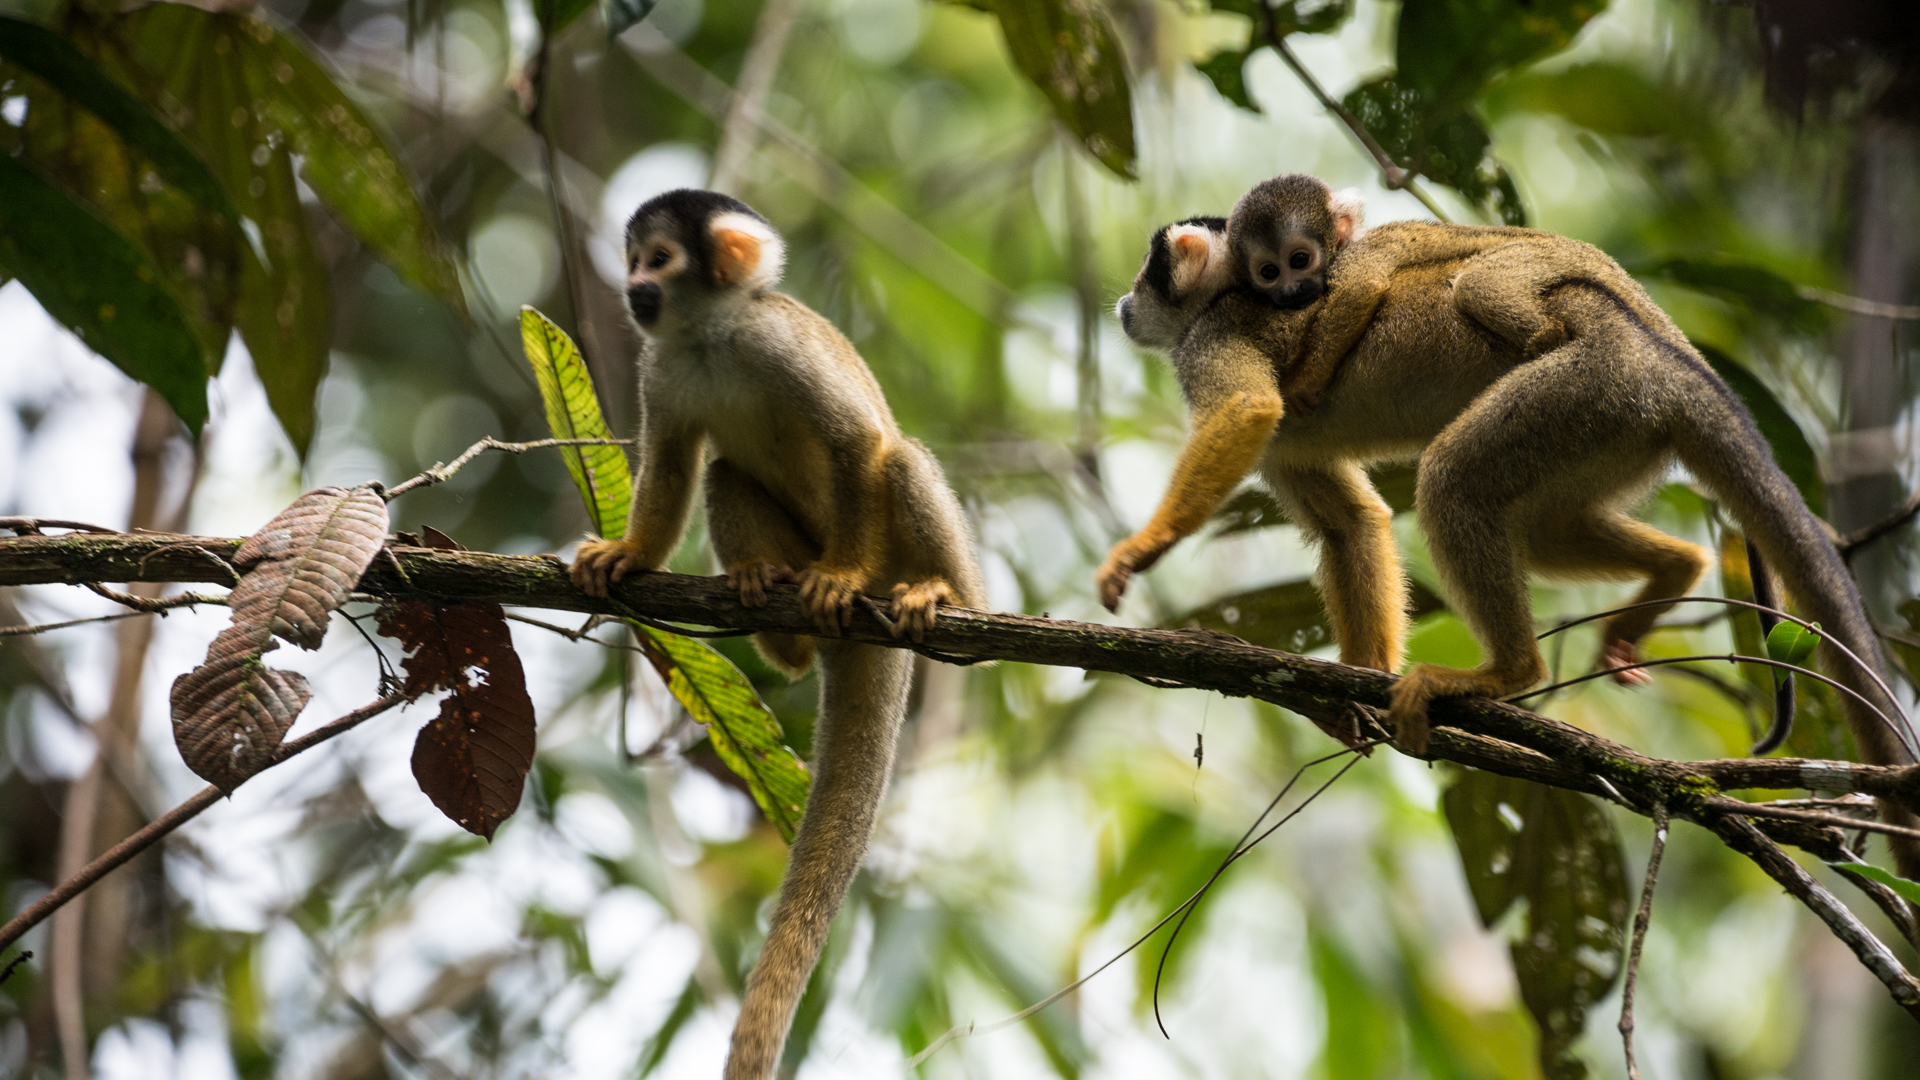 squirrel-monkeys-jone-troconis-08869.jpg